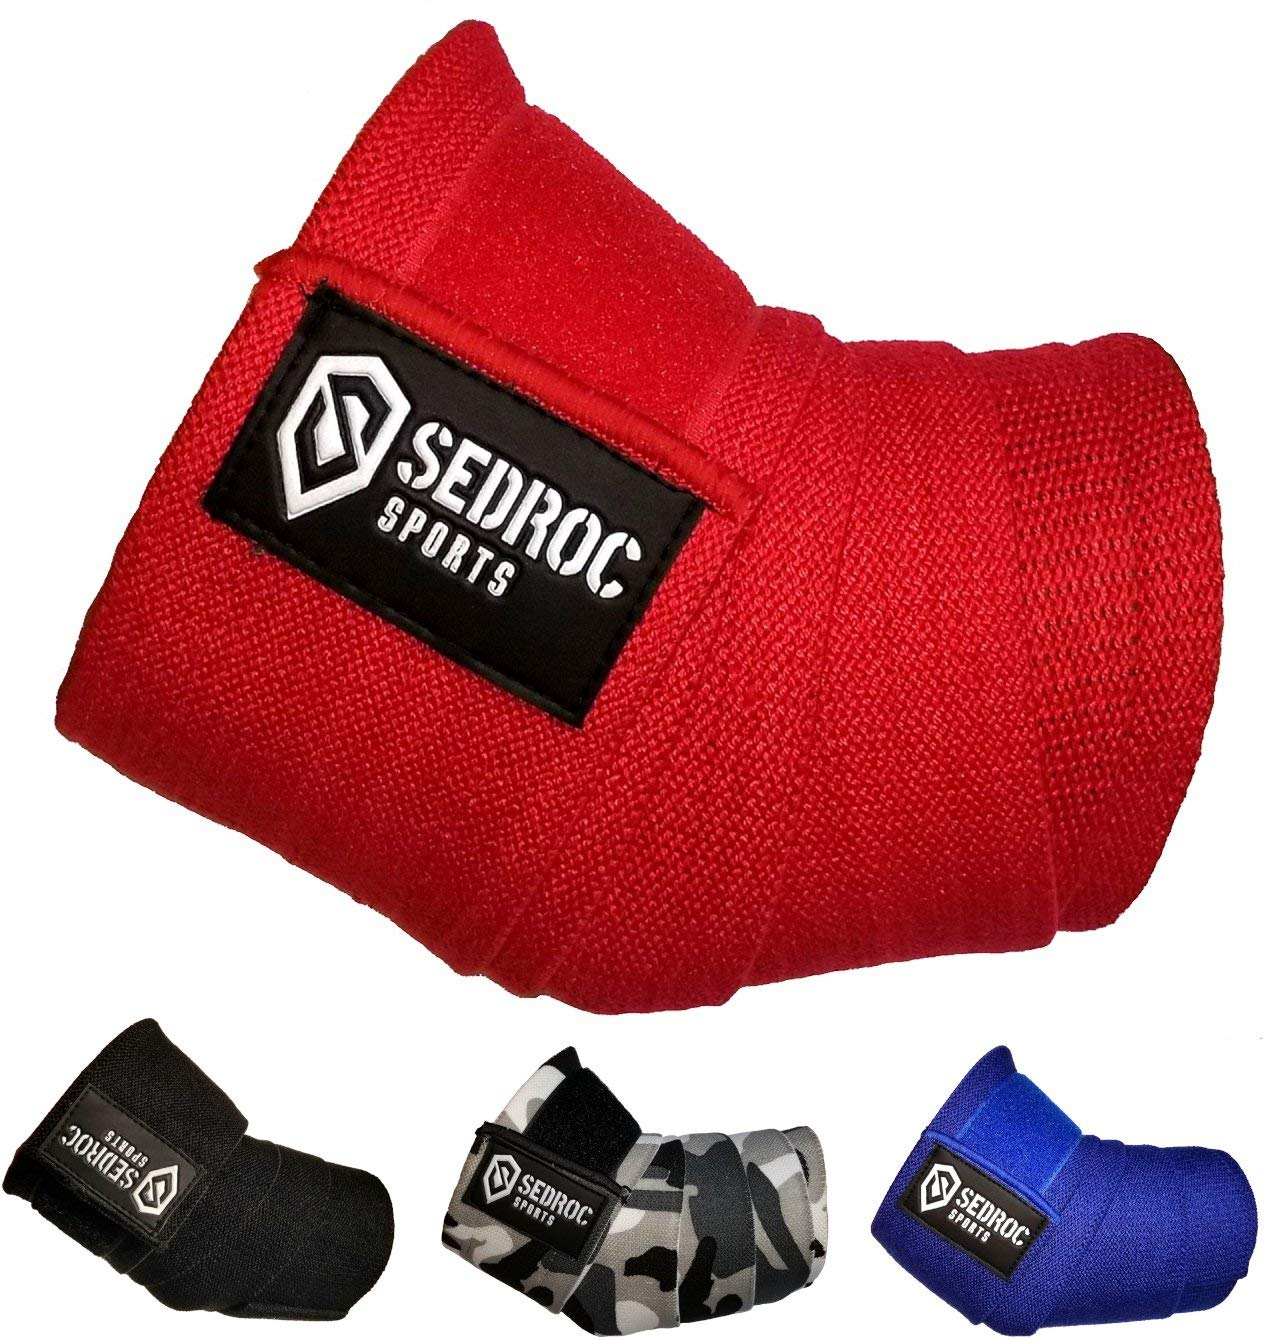 4962a4913e Get Quotations · Sedroc Sports Weight Lifting Elbow Wraps Powerlifting  Support Sleeves Straps - Pair